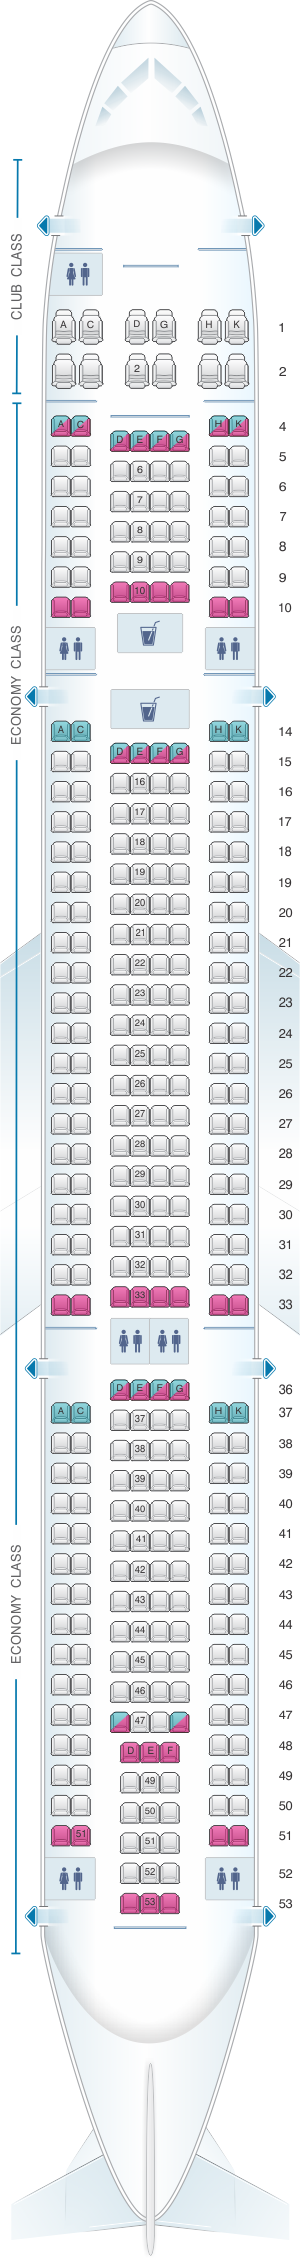 Seat map for Air Transat Airbus A330 300